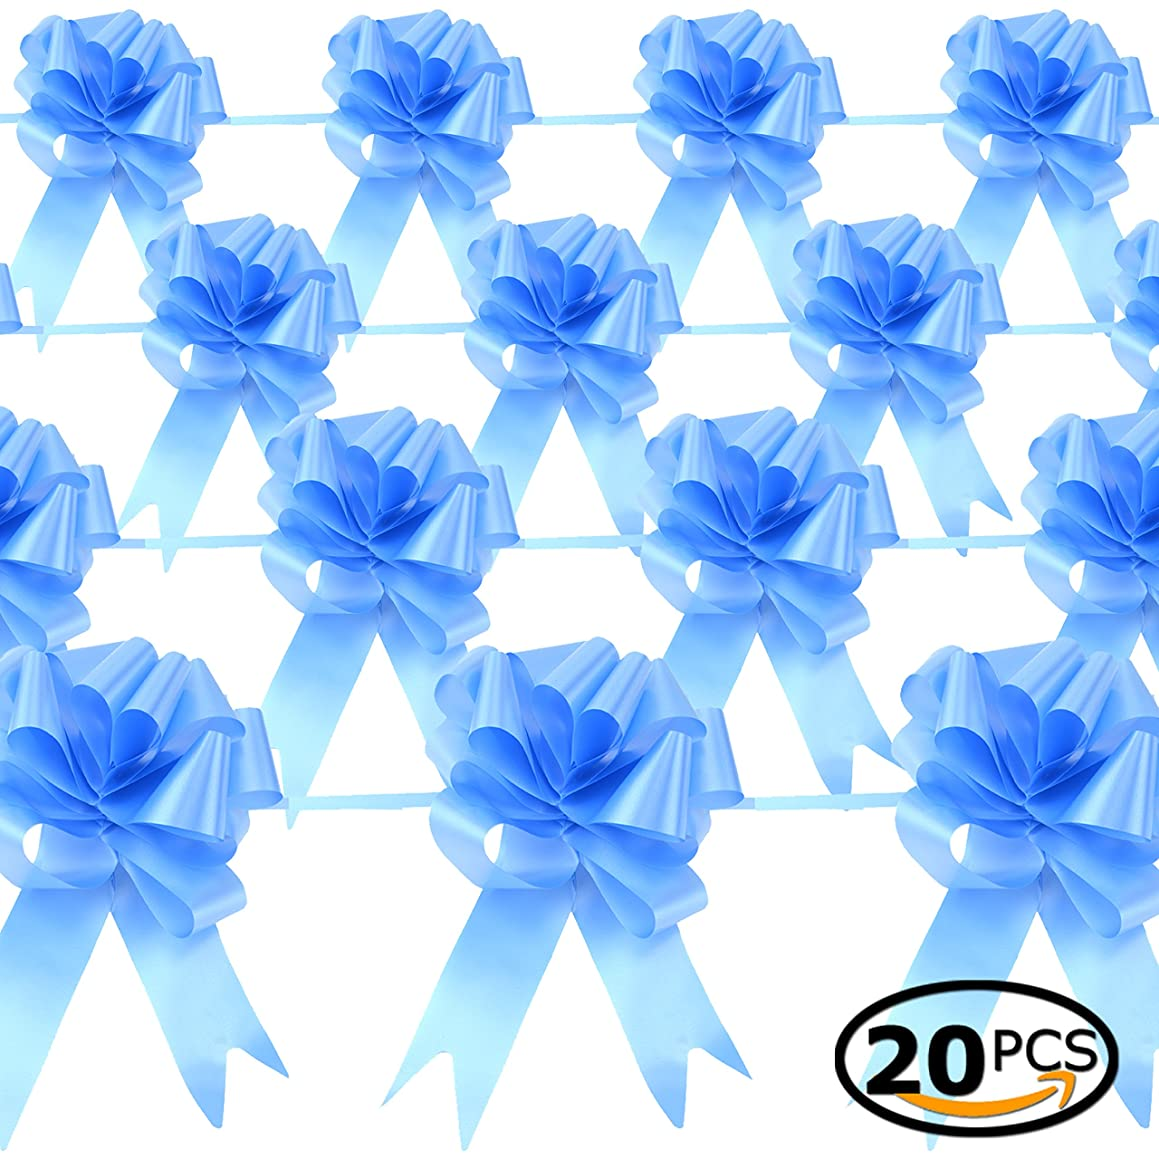 Star Quality Elegant Pull Bow for Gift Package   Solid Color Gift Decoration Bow Great for Wedding, Birthday and Parties (6-1/2 Inch, Light Blue)